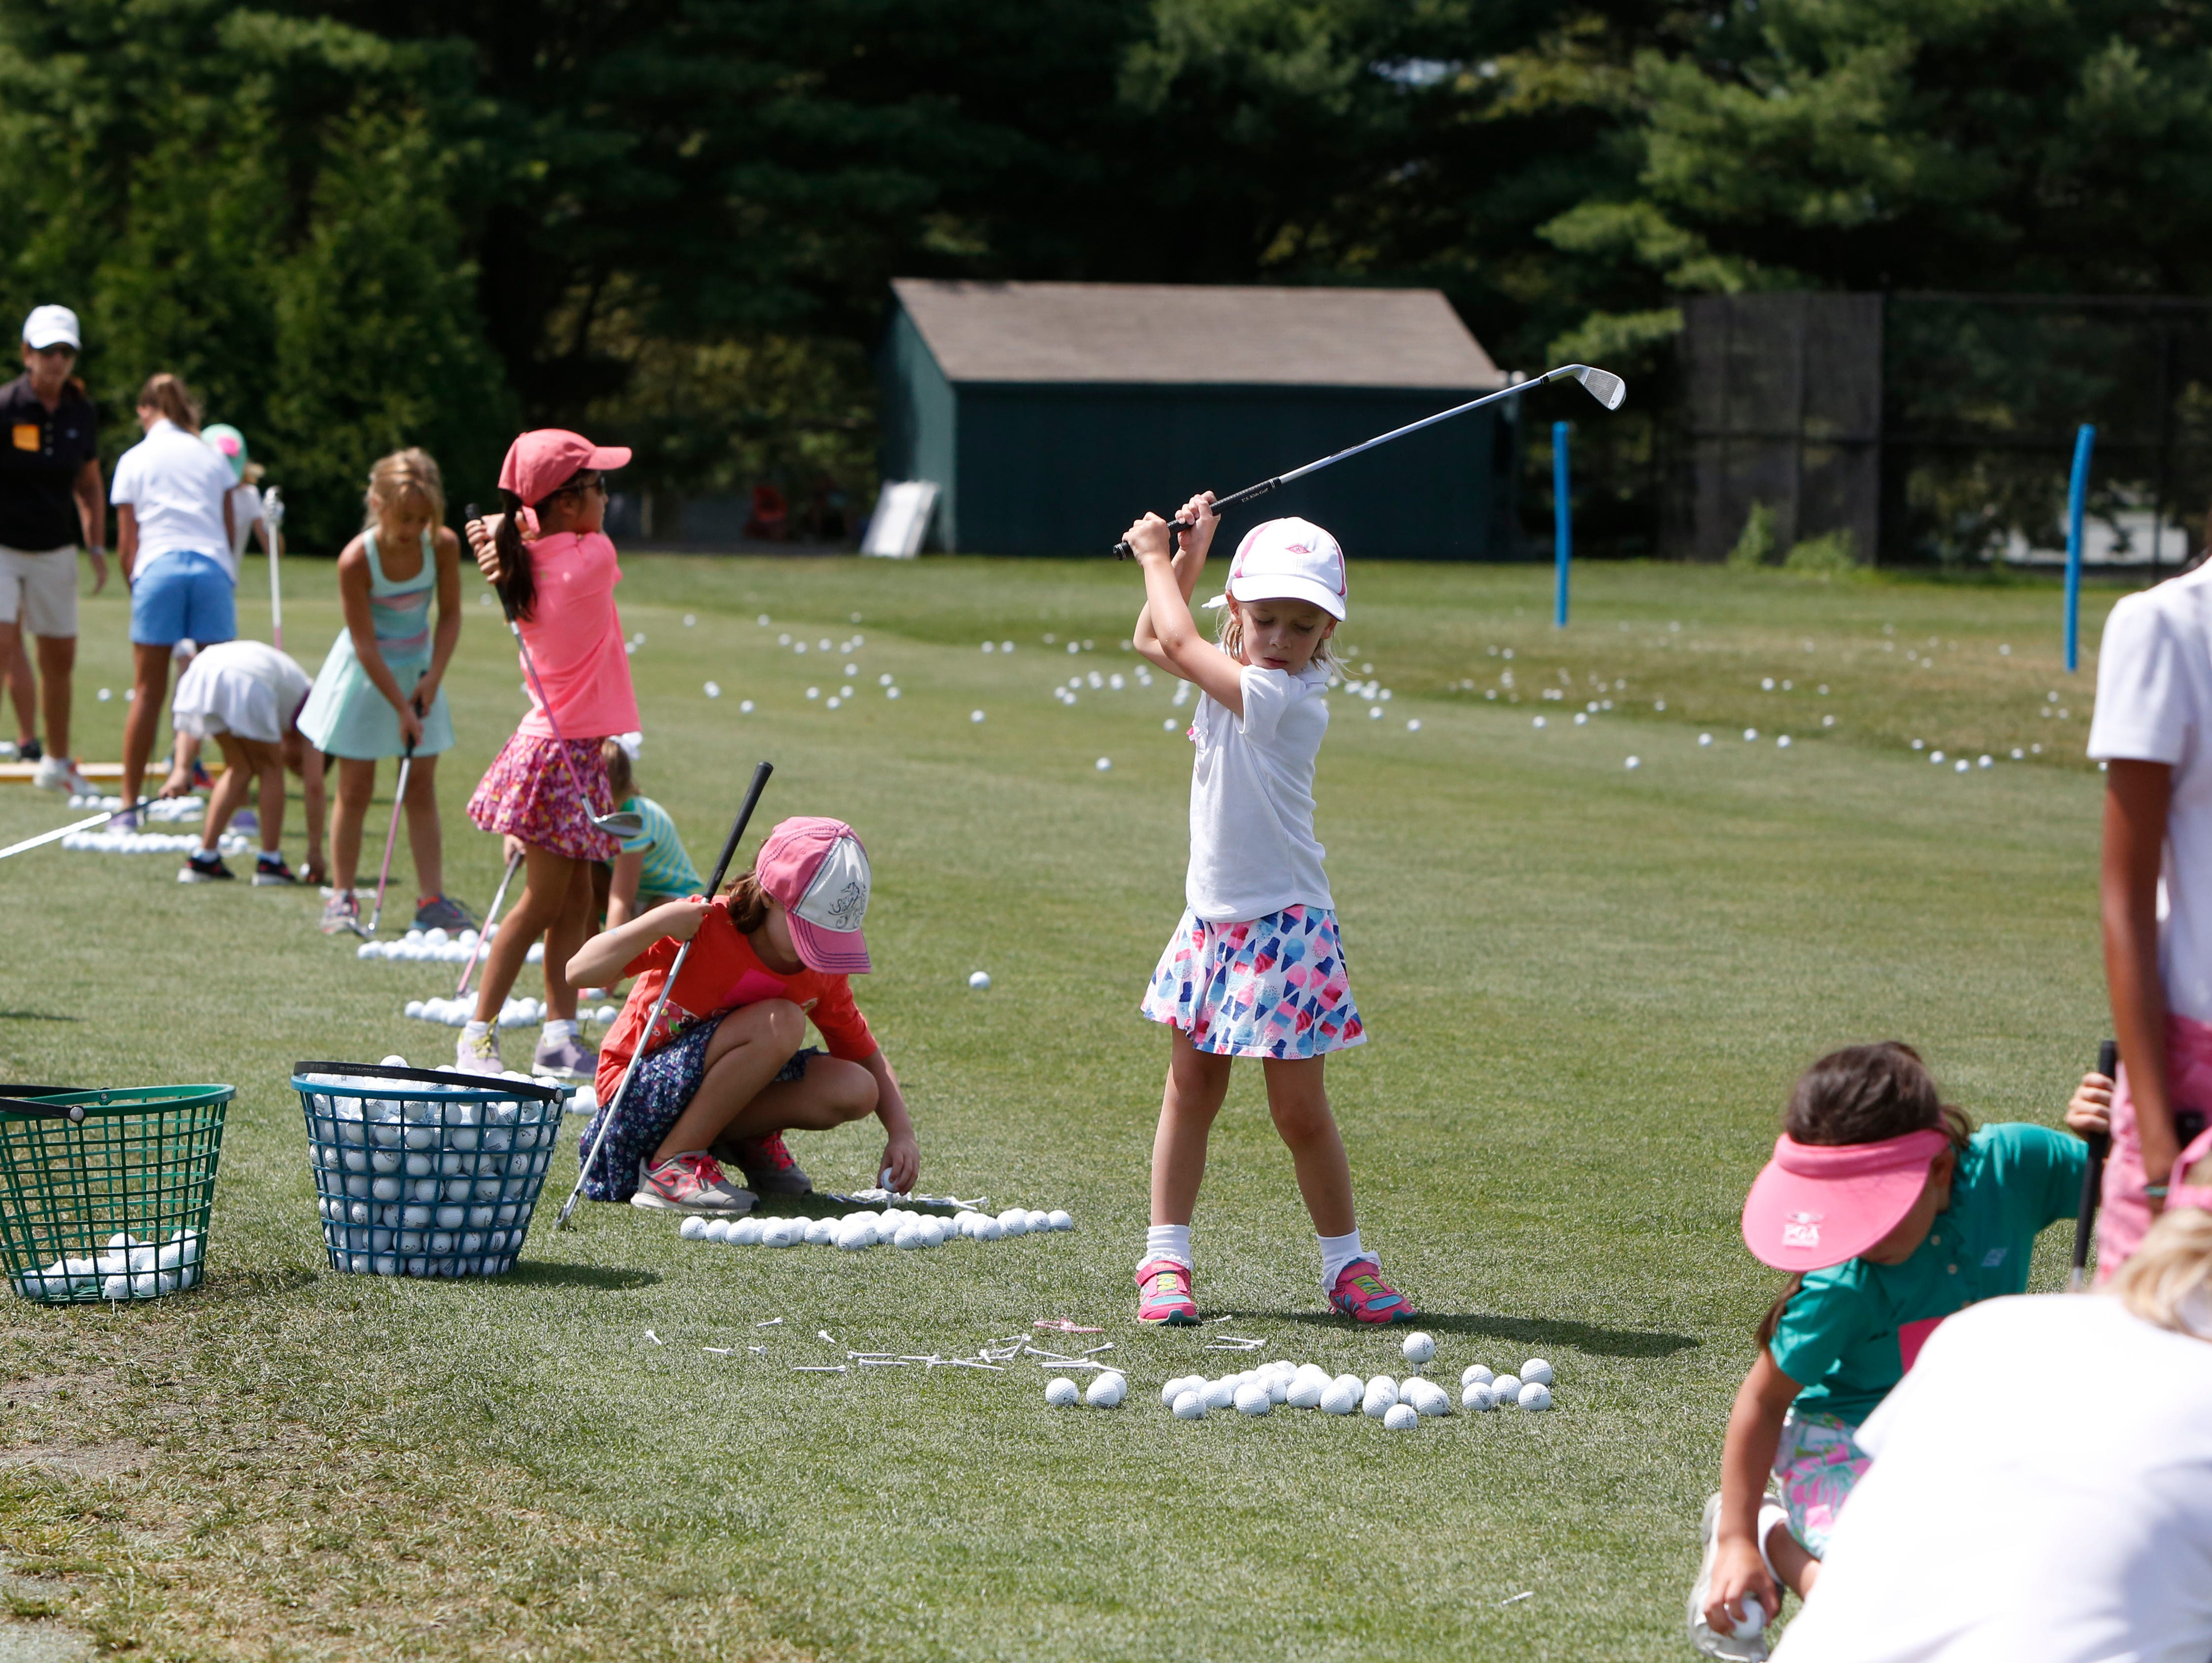 Eloise Schultz, 6, of Rye practices her swing at the Girls to the Tee event put on by the Women's Metropolitan Golf Association at Westchester Country Club in Rye, Aug. 8, 2016. The free clinic, for girls ages 6-18, is an afternoon of instruction and networking to help show girls who are learning the game that they are part of a larger group.